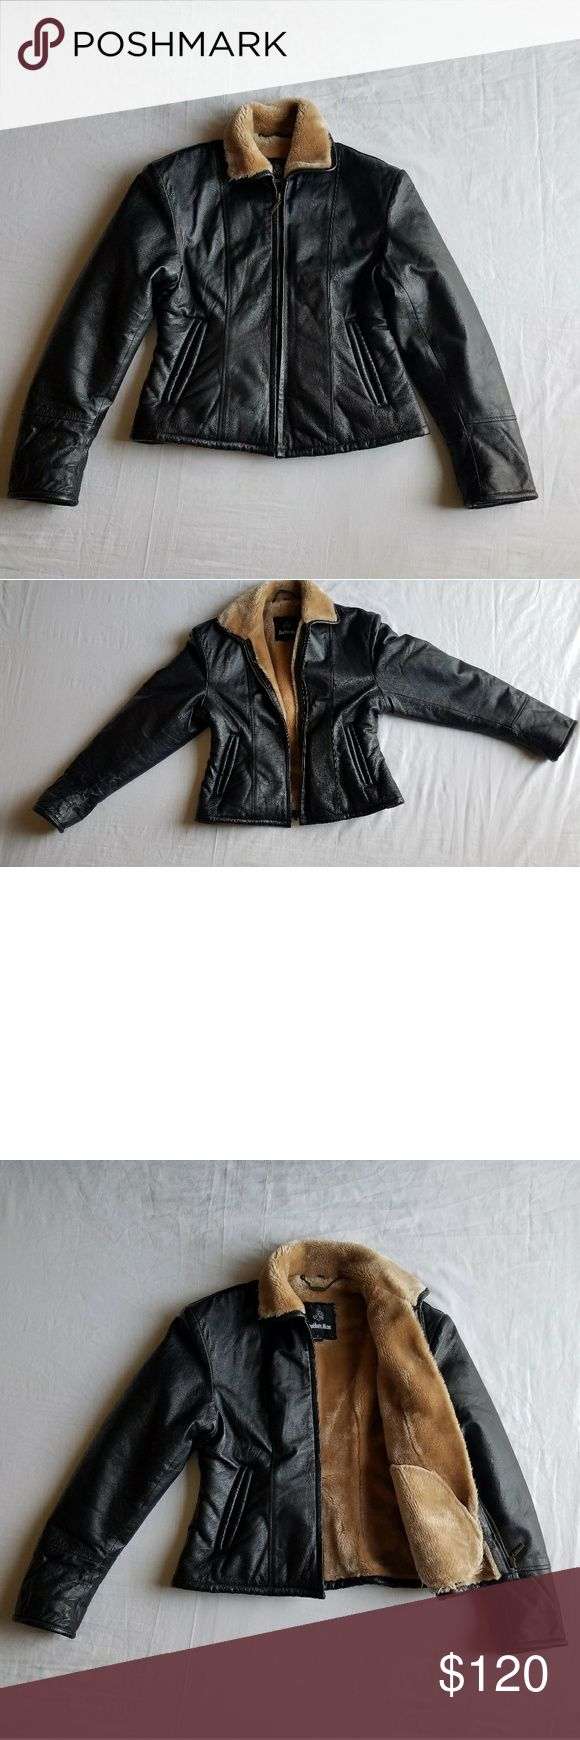 Leather Man Genuine Size M  LadiesJacket Black Black hipsters jacket size M. Really warm . Worn as formal and casual wear. leather Man Jackets & Coats Jean Jackets